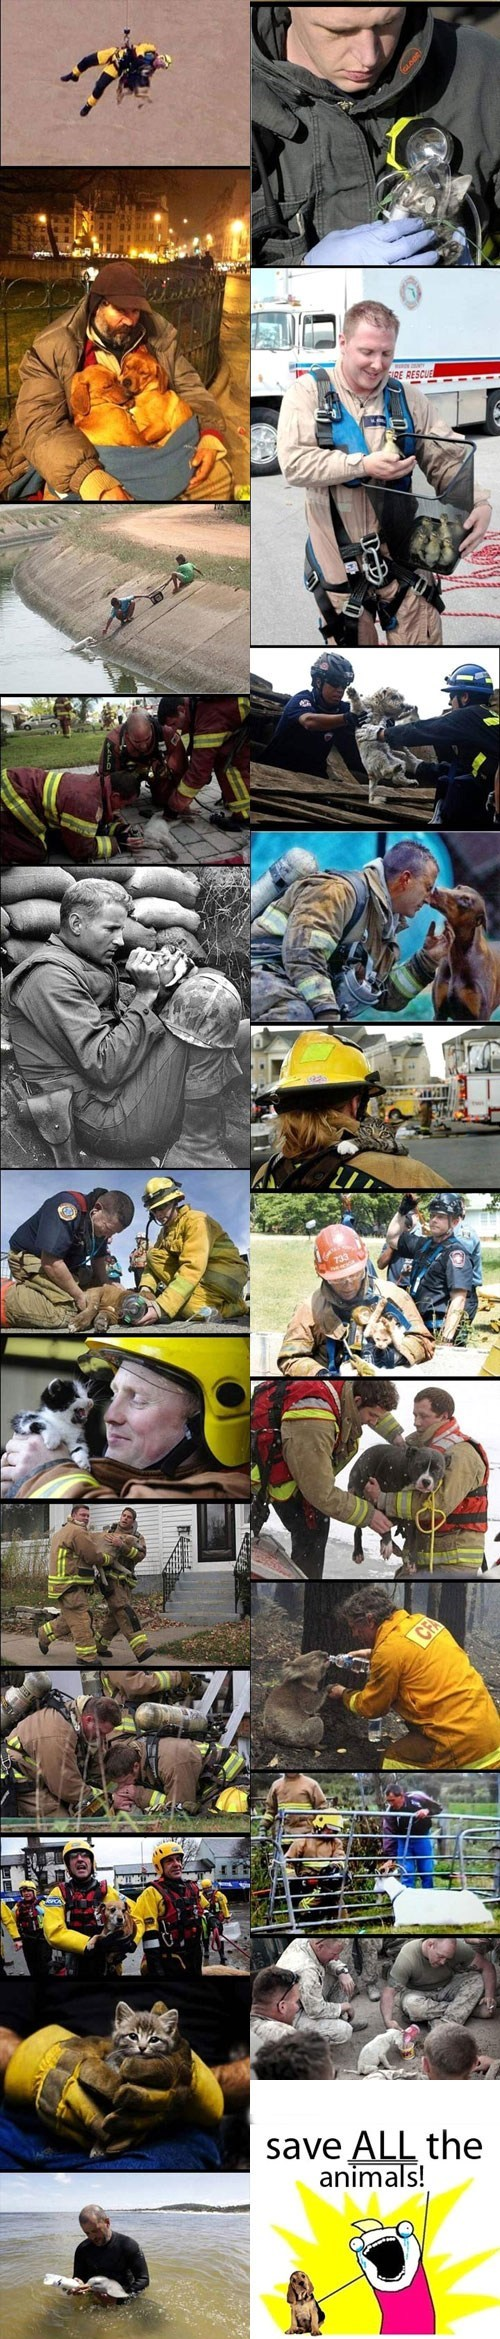 dogs,heroes,firefighters,heartwarming,ducks,koalas,all the things,Memes,Cats,animals,rescue